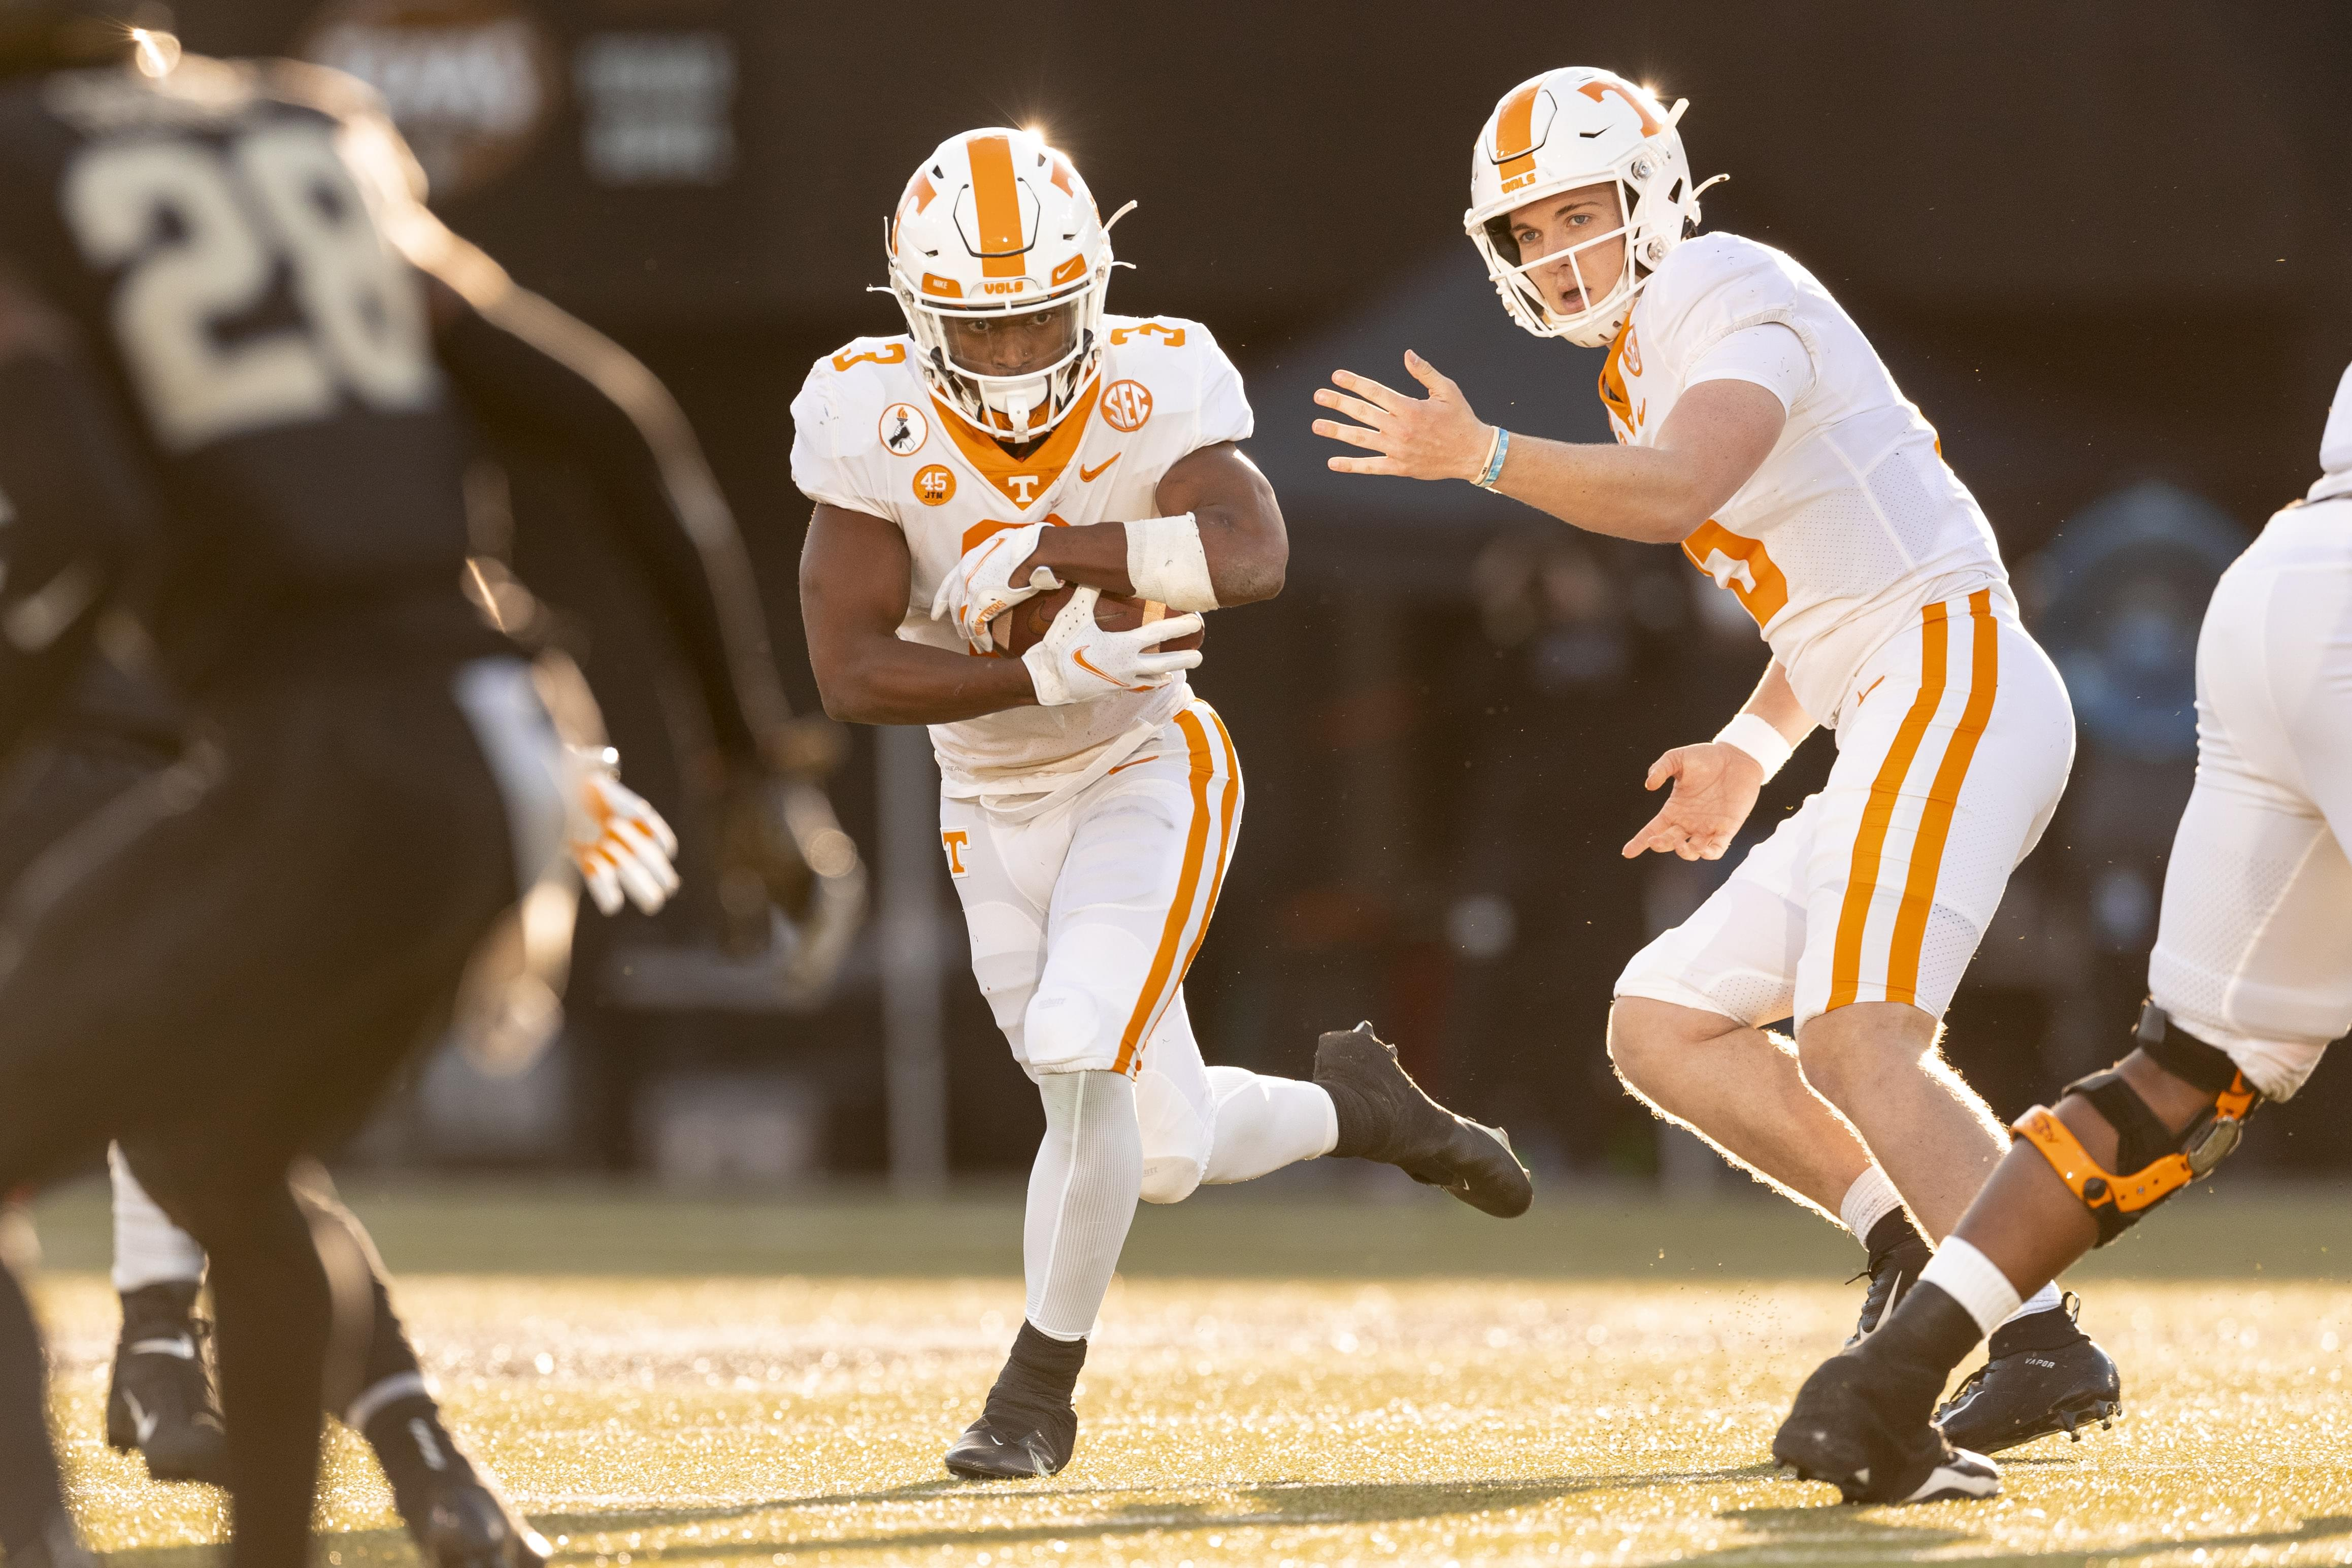 Week 13 SEC football score predictions; Aggies have playoff stakes, looking for style points vs Vols